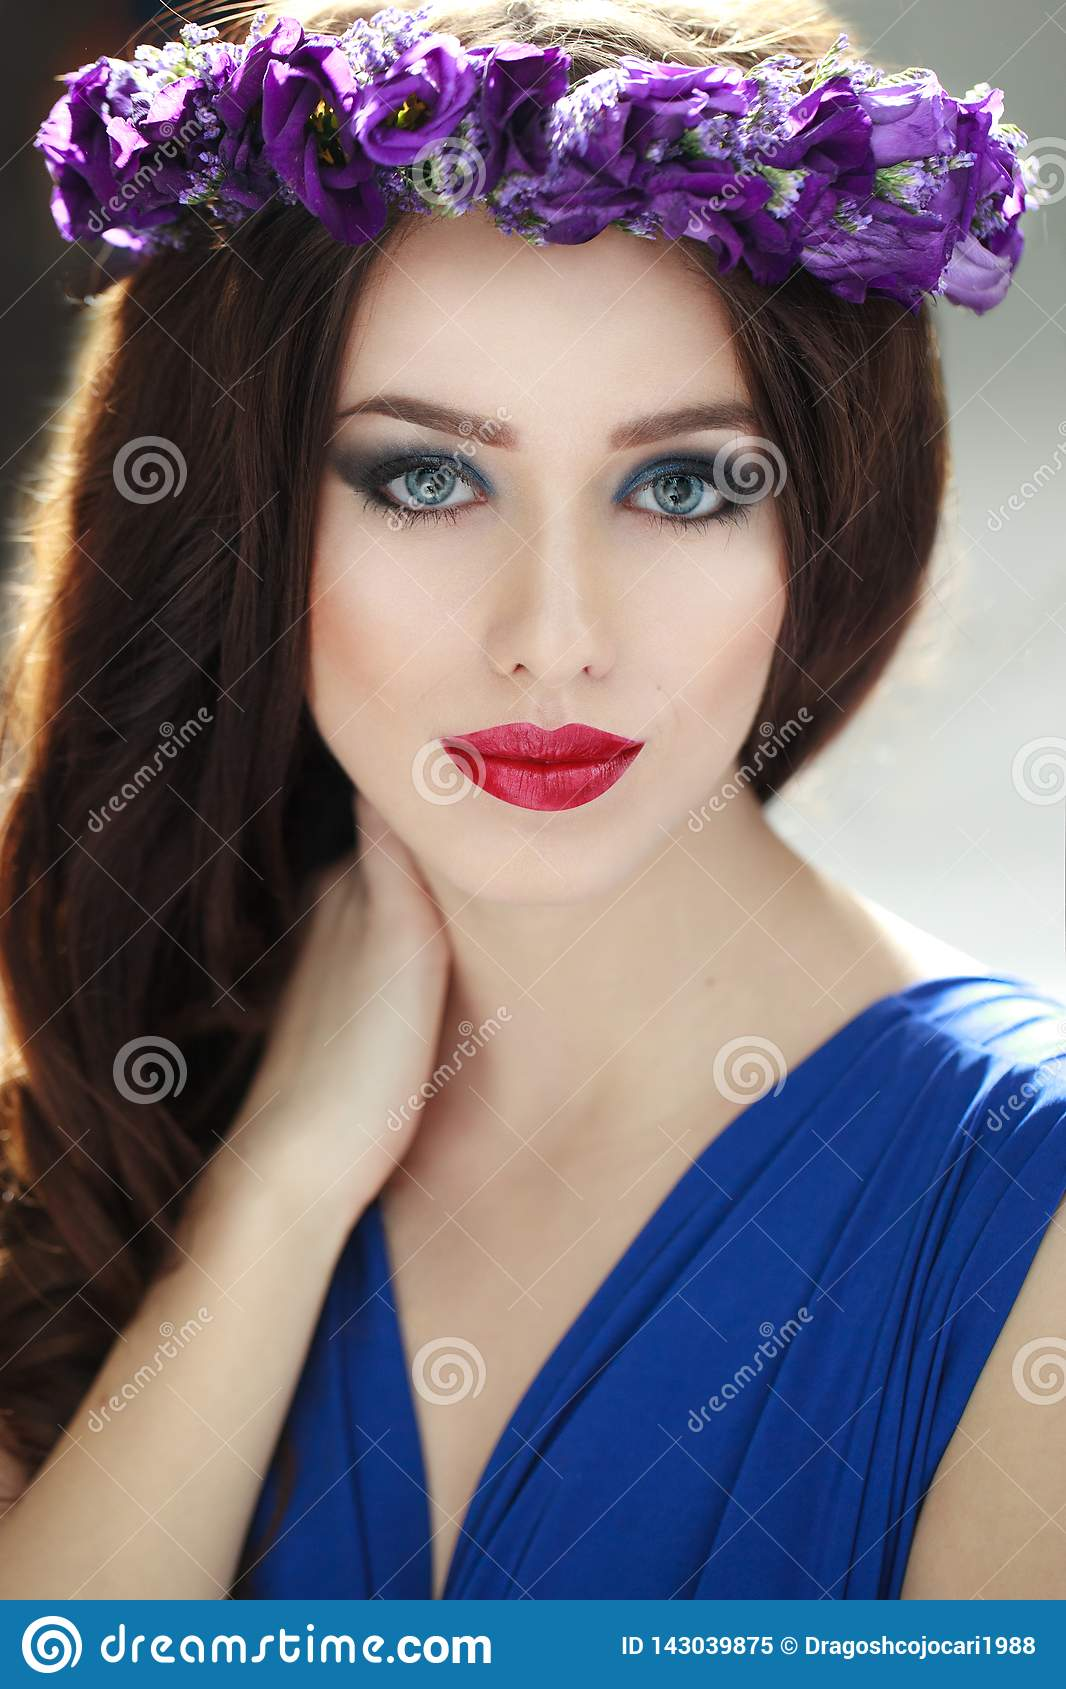 Fashion portrait of a beauty brunette young woman with purpple flower crown. Hairstyle and Perfect Make Up.